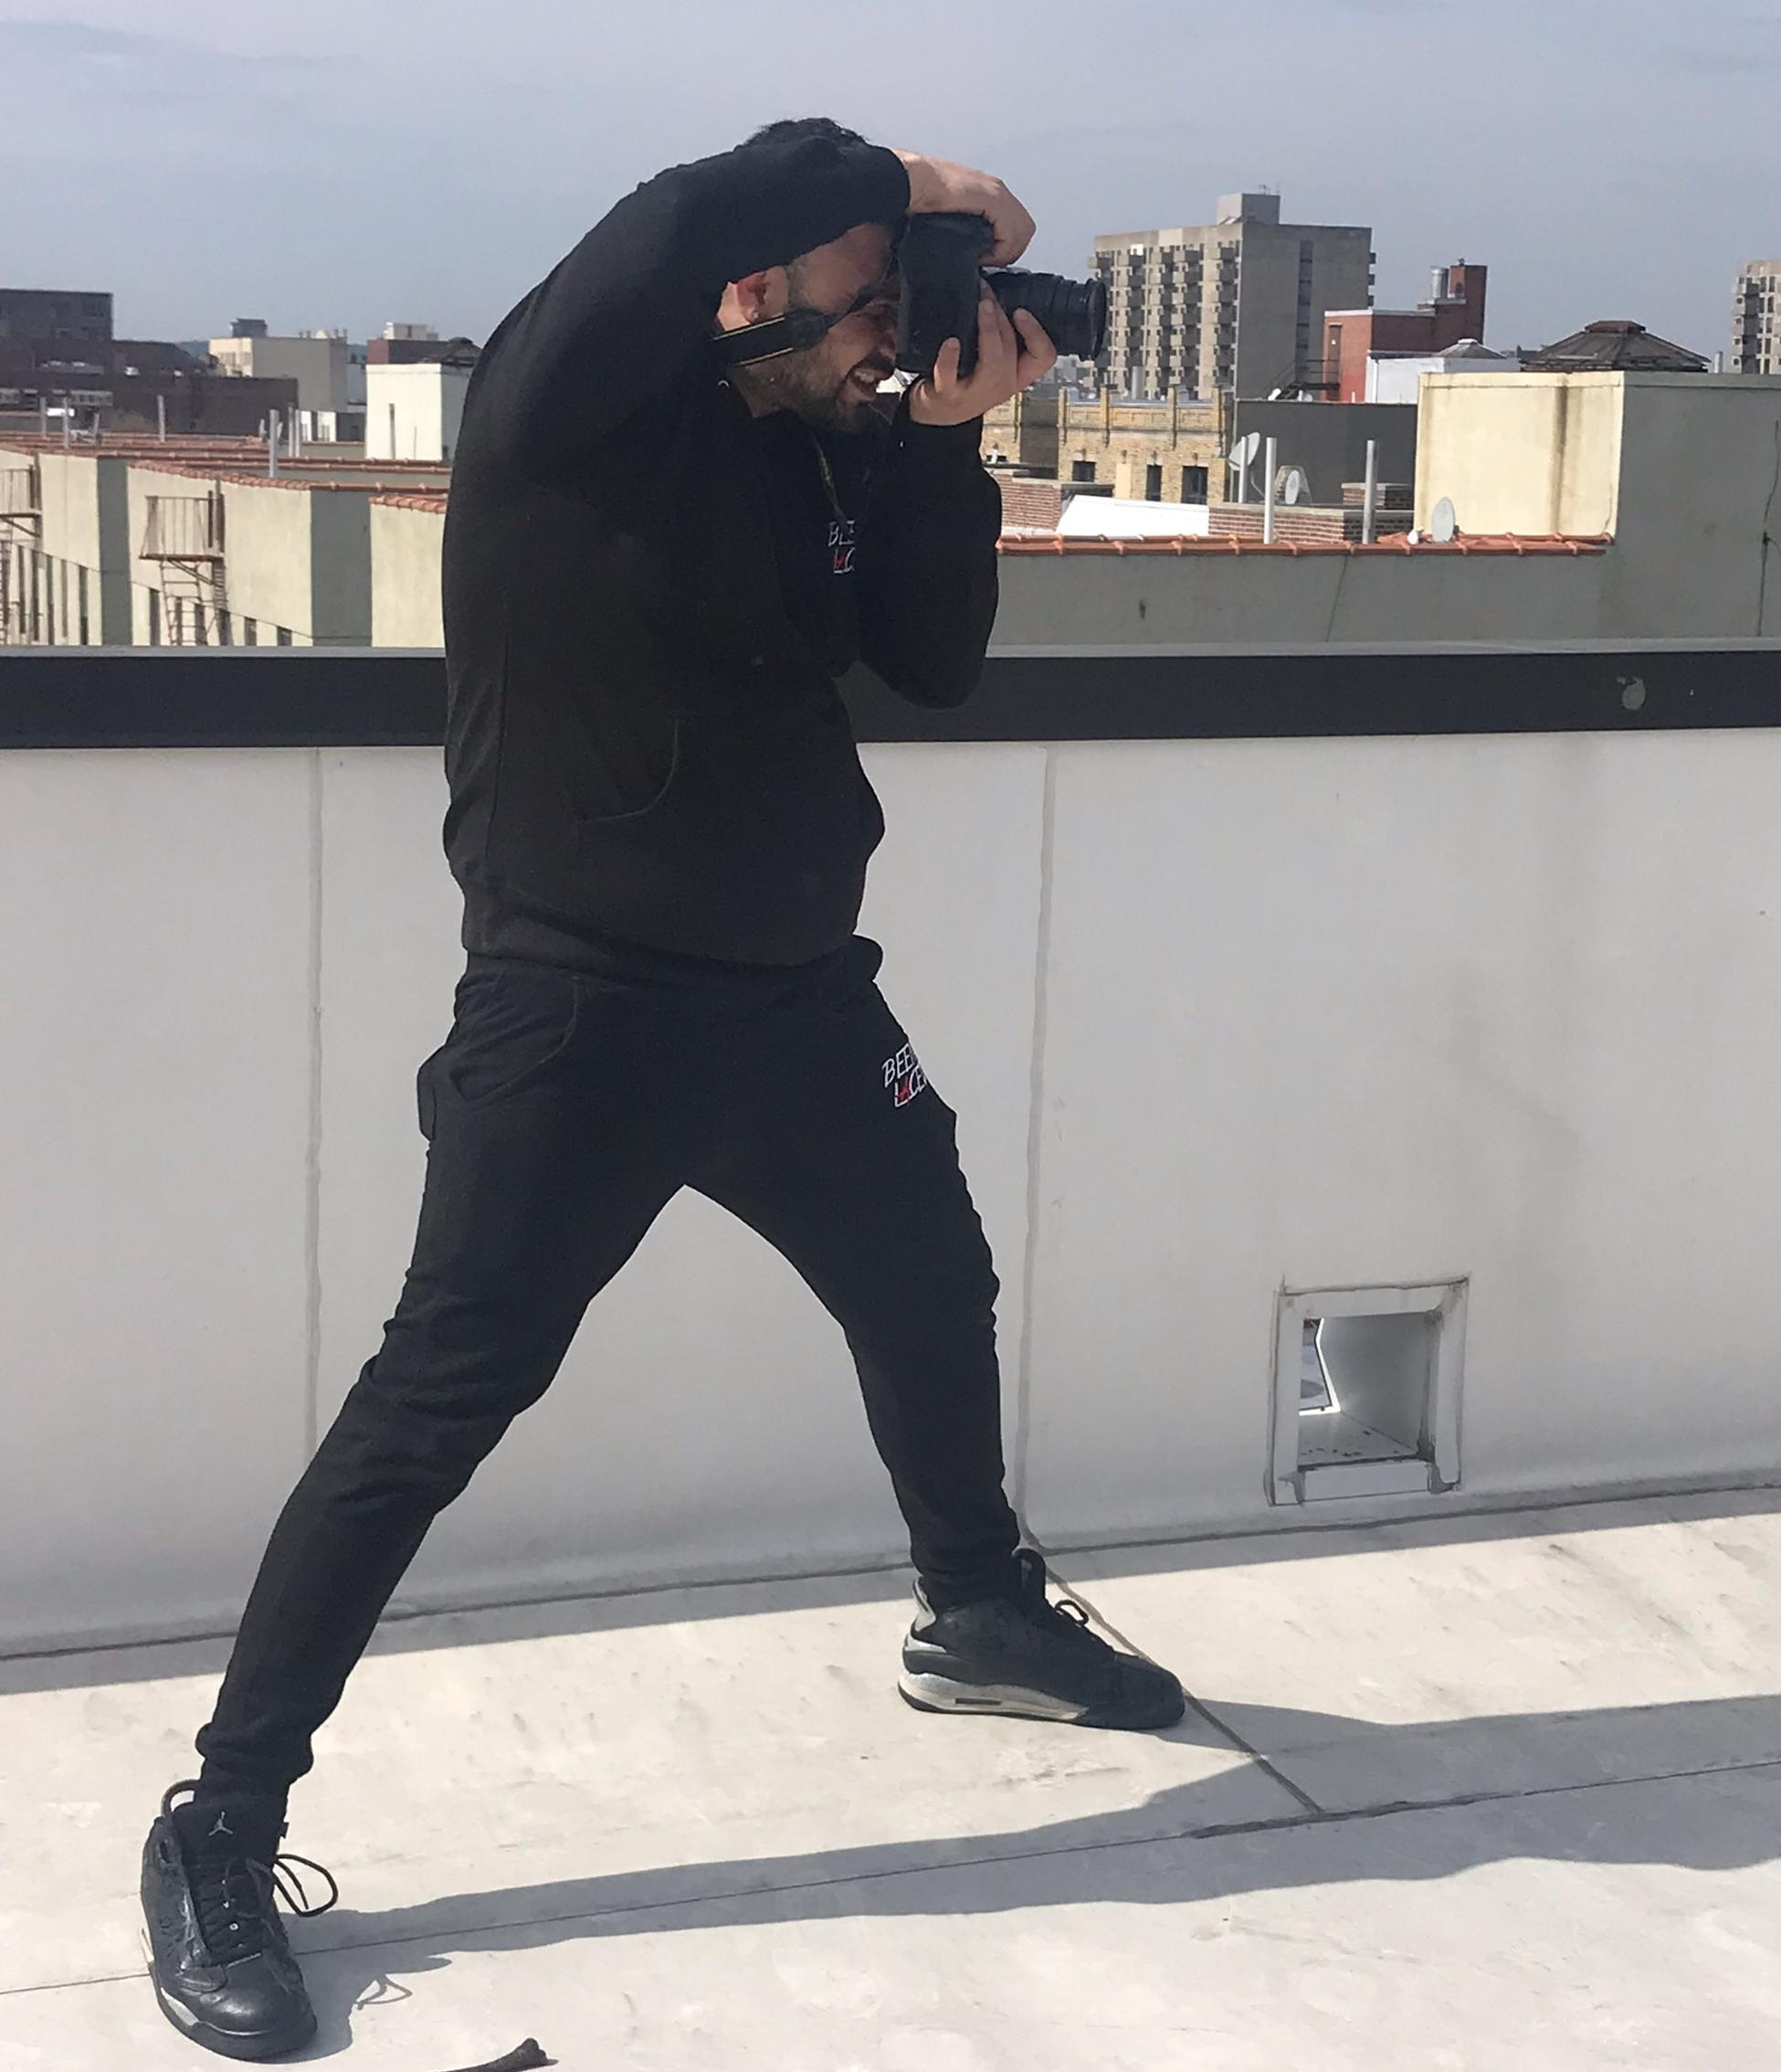 Eddie Pabon during a rooftop photo shoot in the Bronx, New York | Courtesy of Jessie Paulino